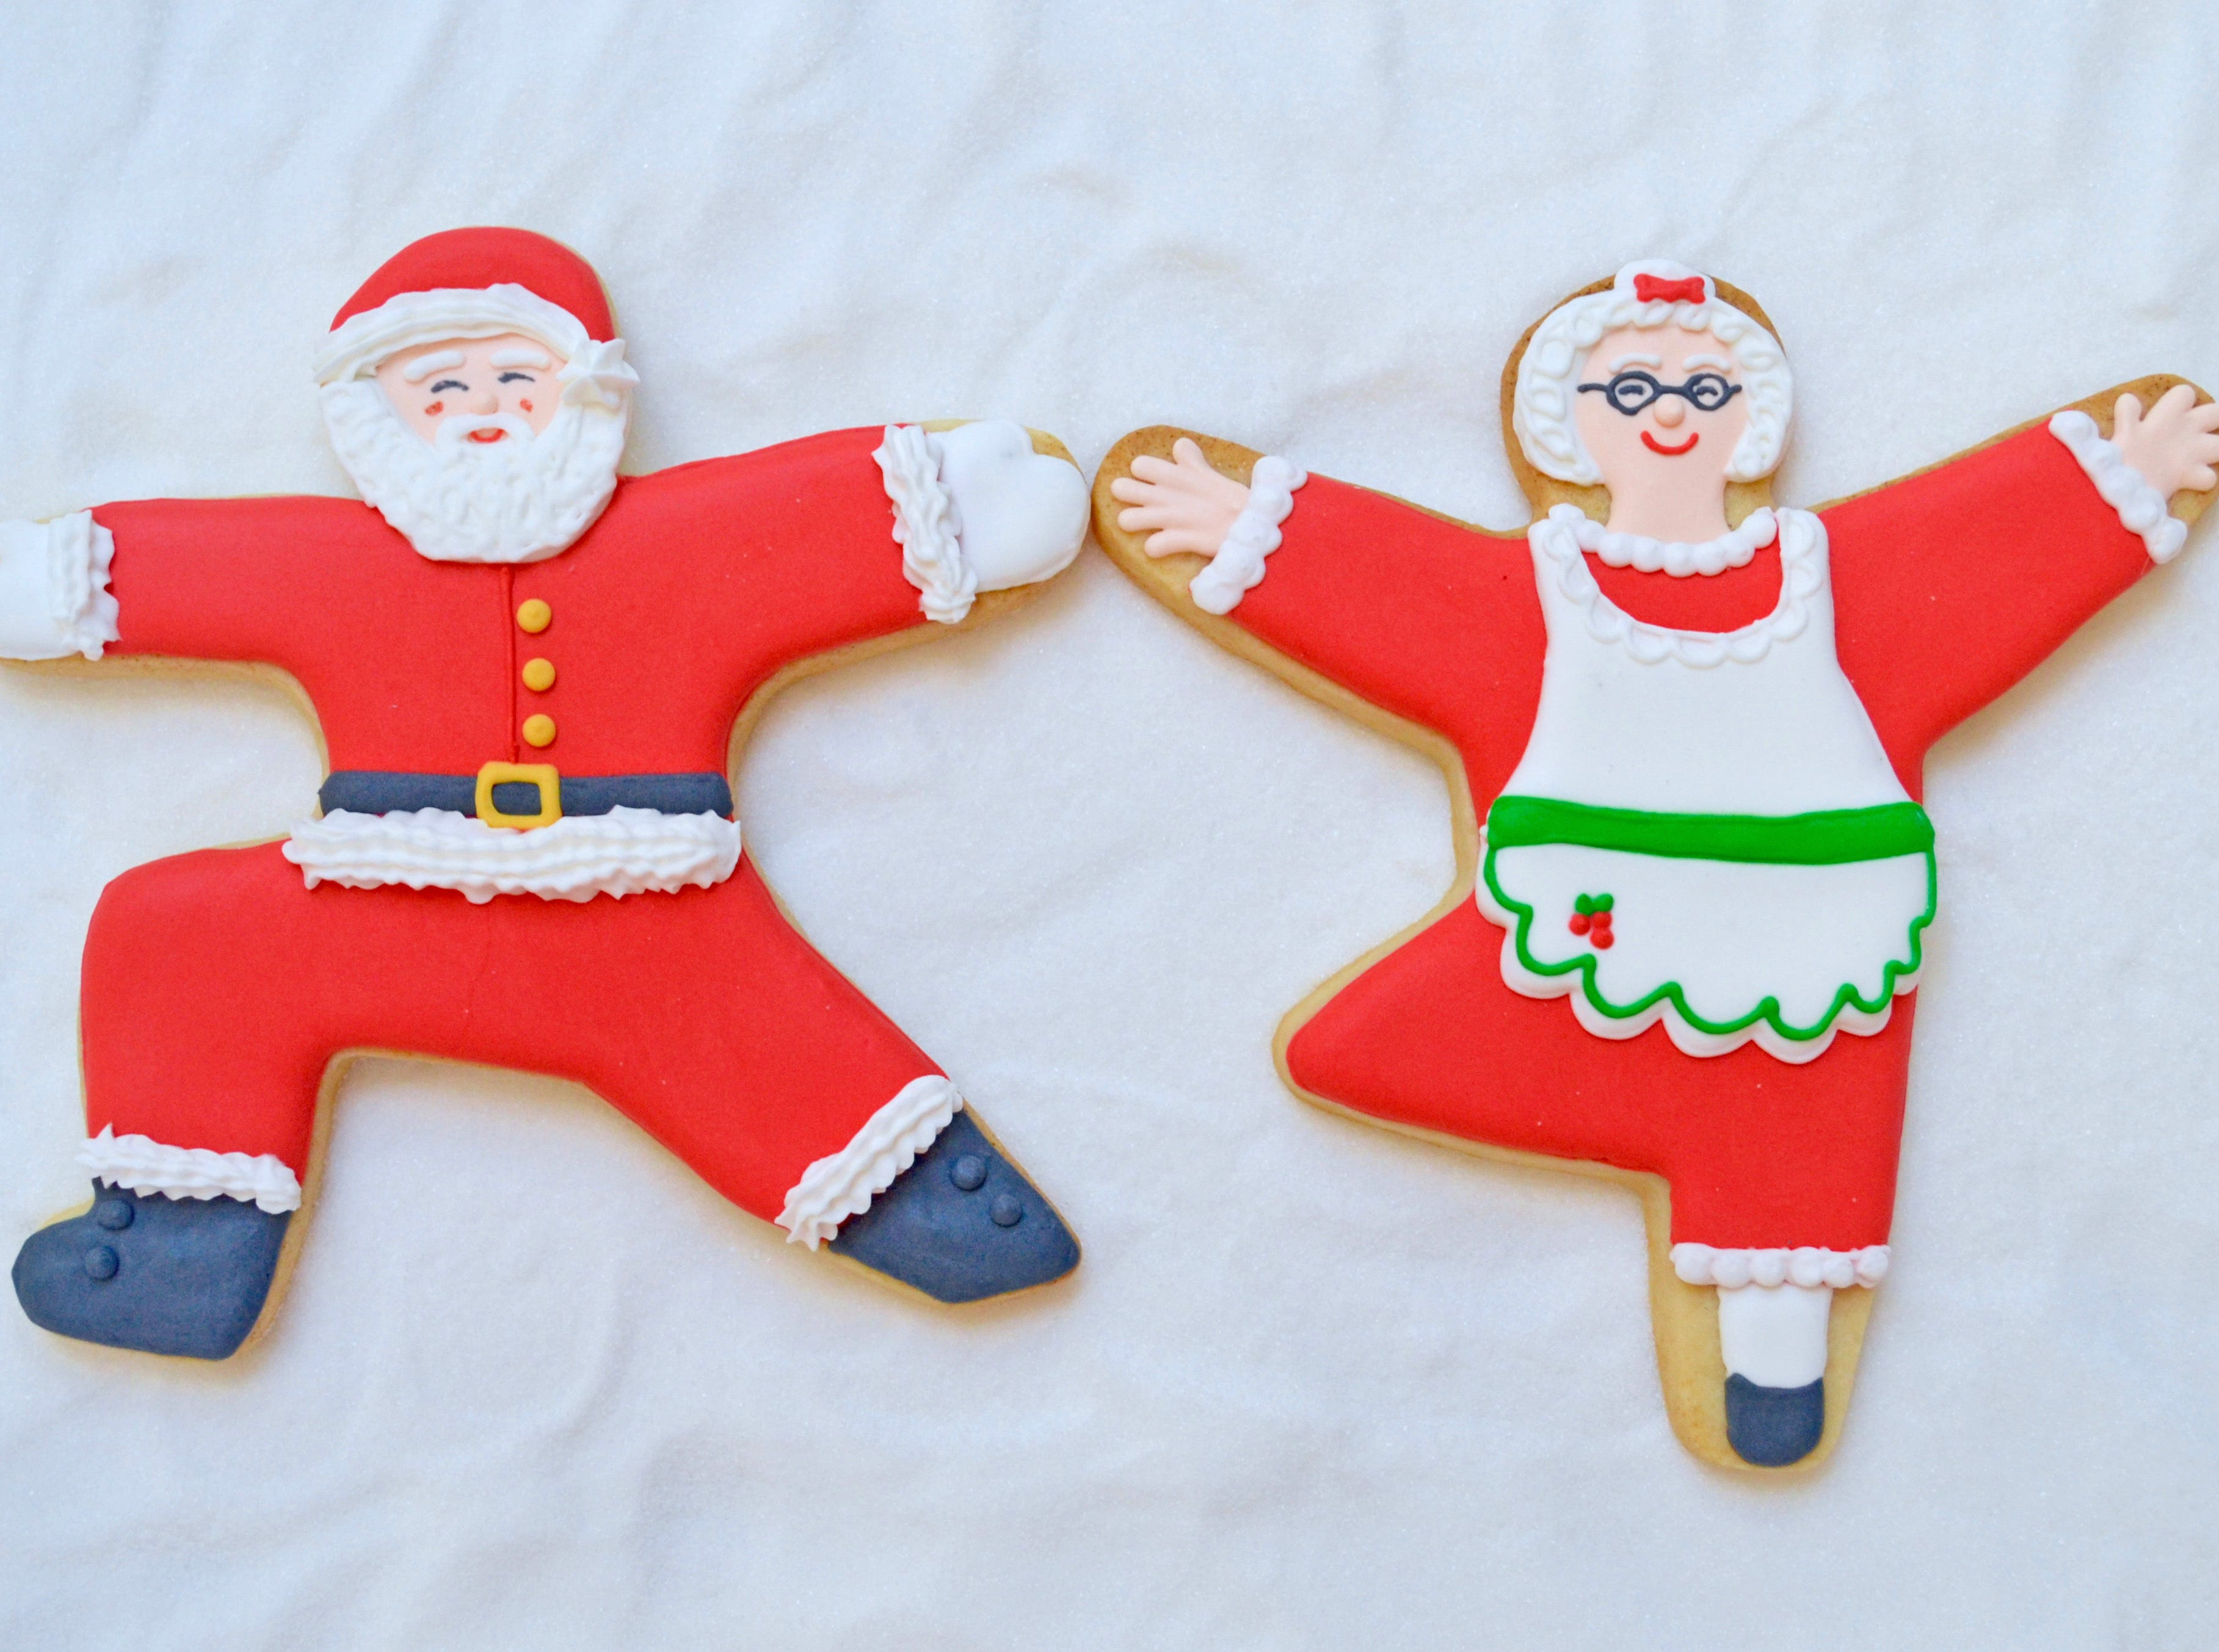 Santa and Mrs. Claus cookies made with yoga pose cookie cutters from Yummi Yogi.